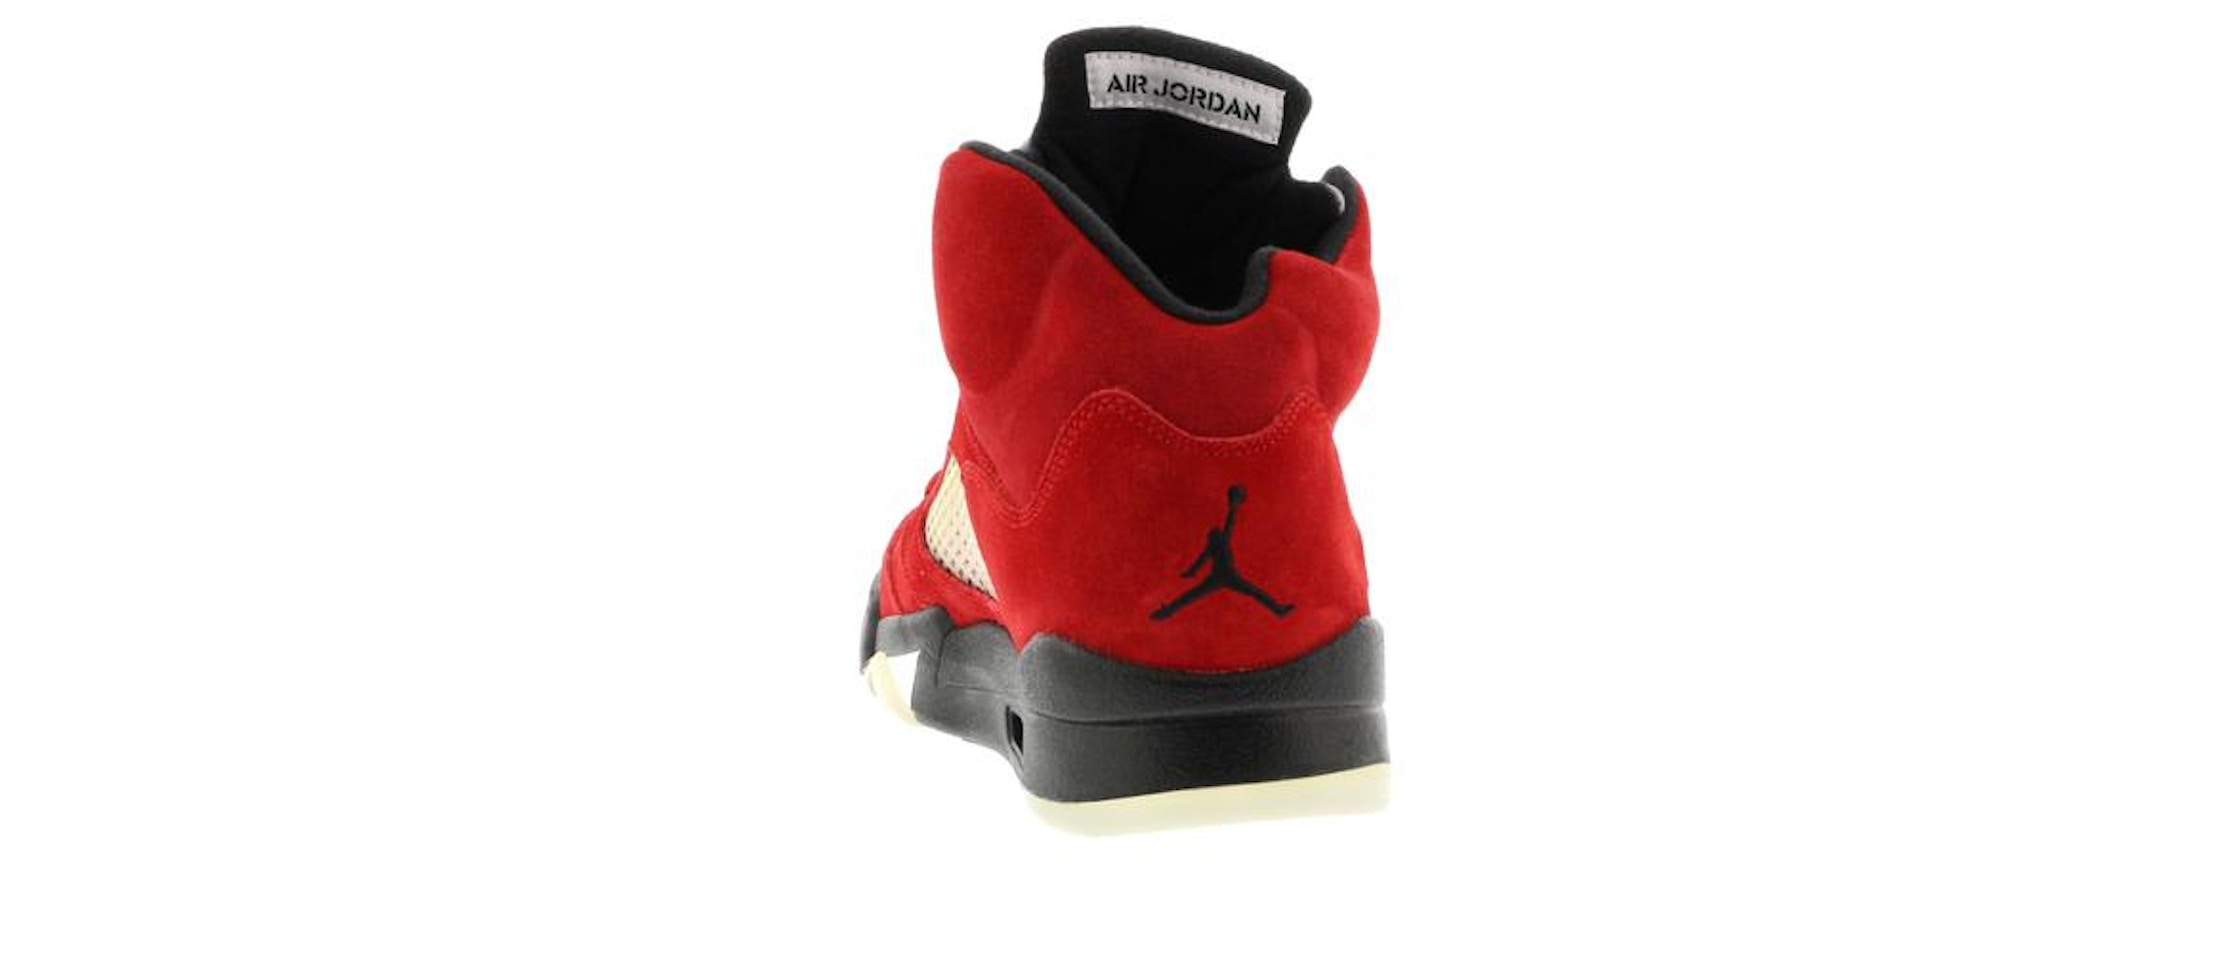 46a0598d9dae ... size 15 ds  Air-Jordan-Raging-Bull-Pack  Jordan 5 Retro DMP Raging Bull  Red Suede ...